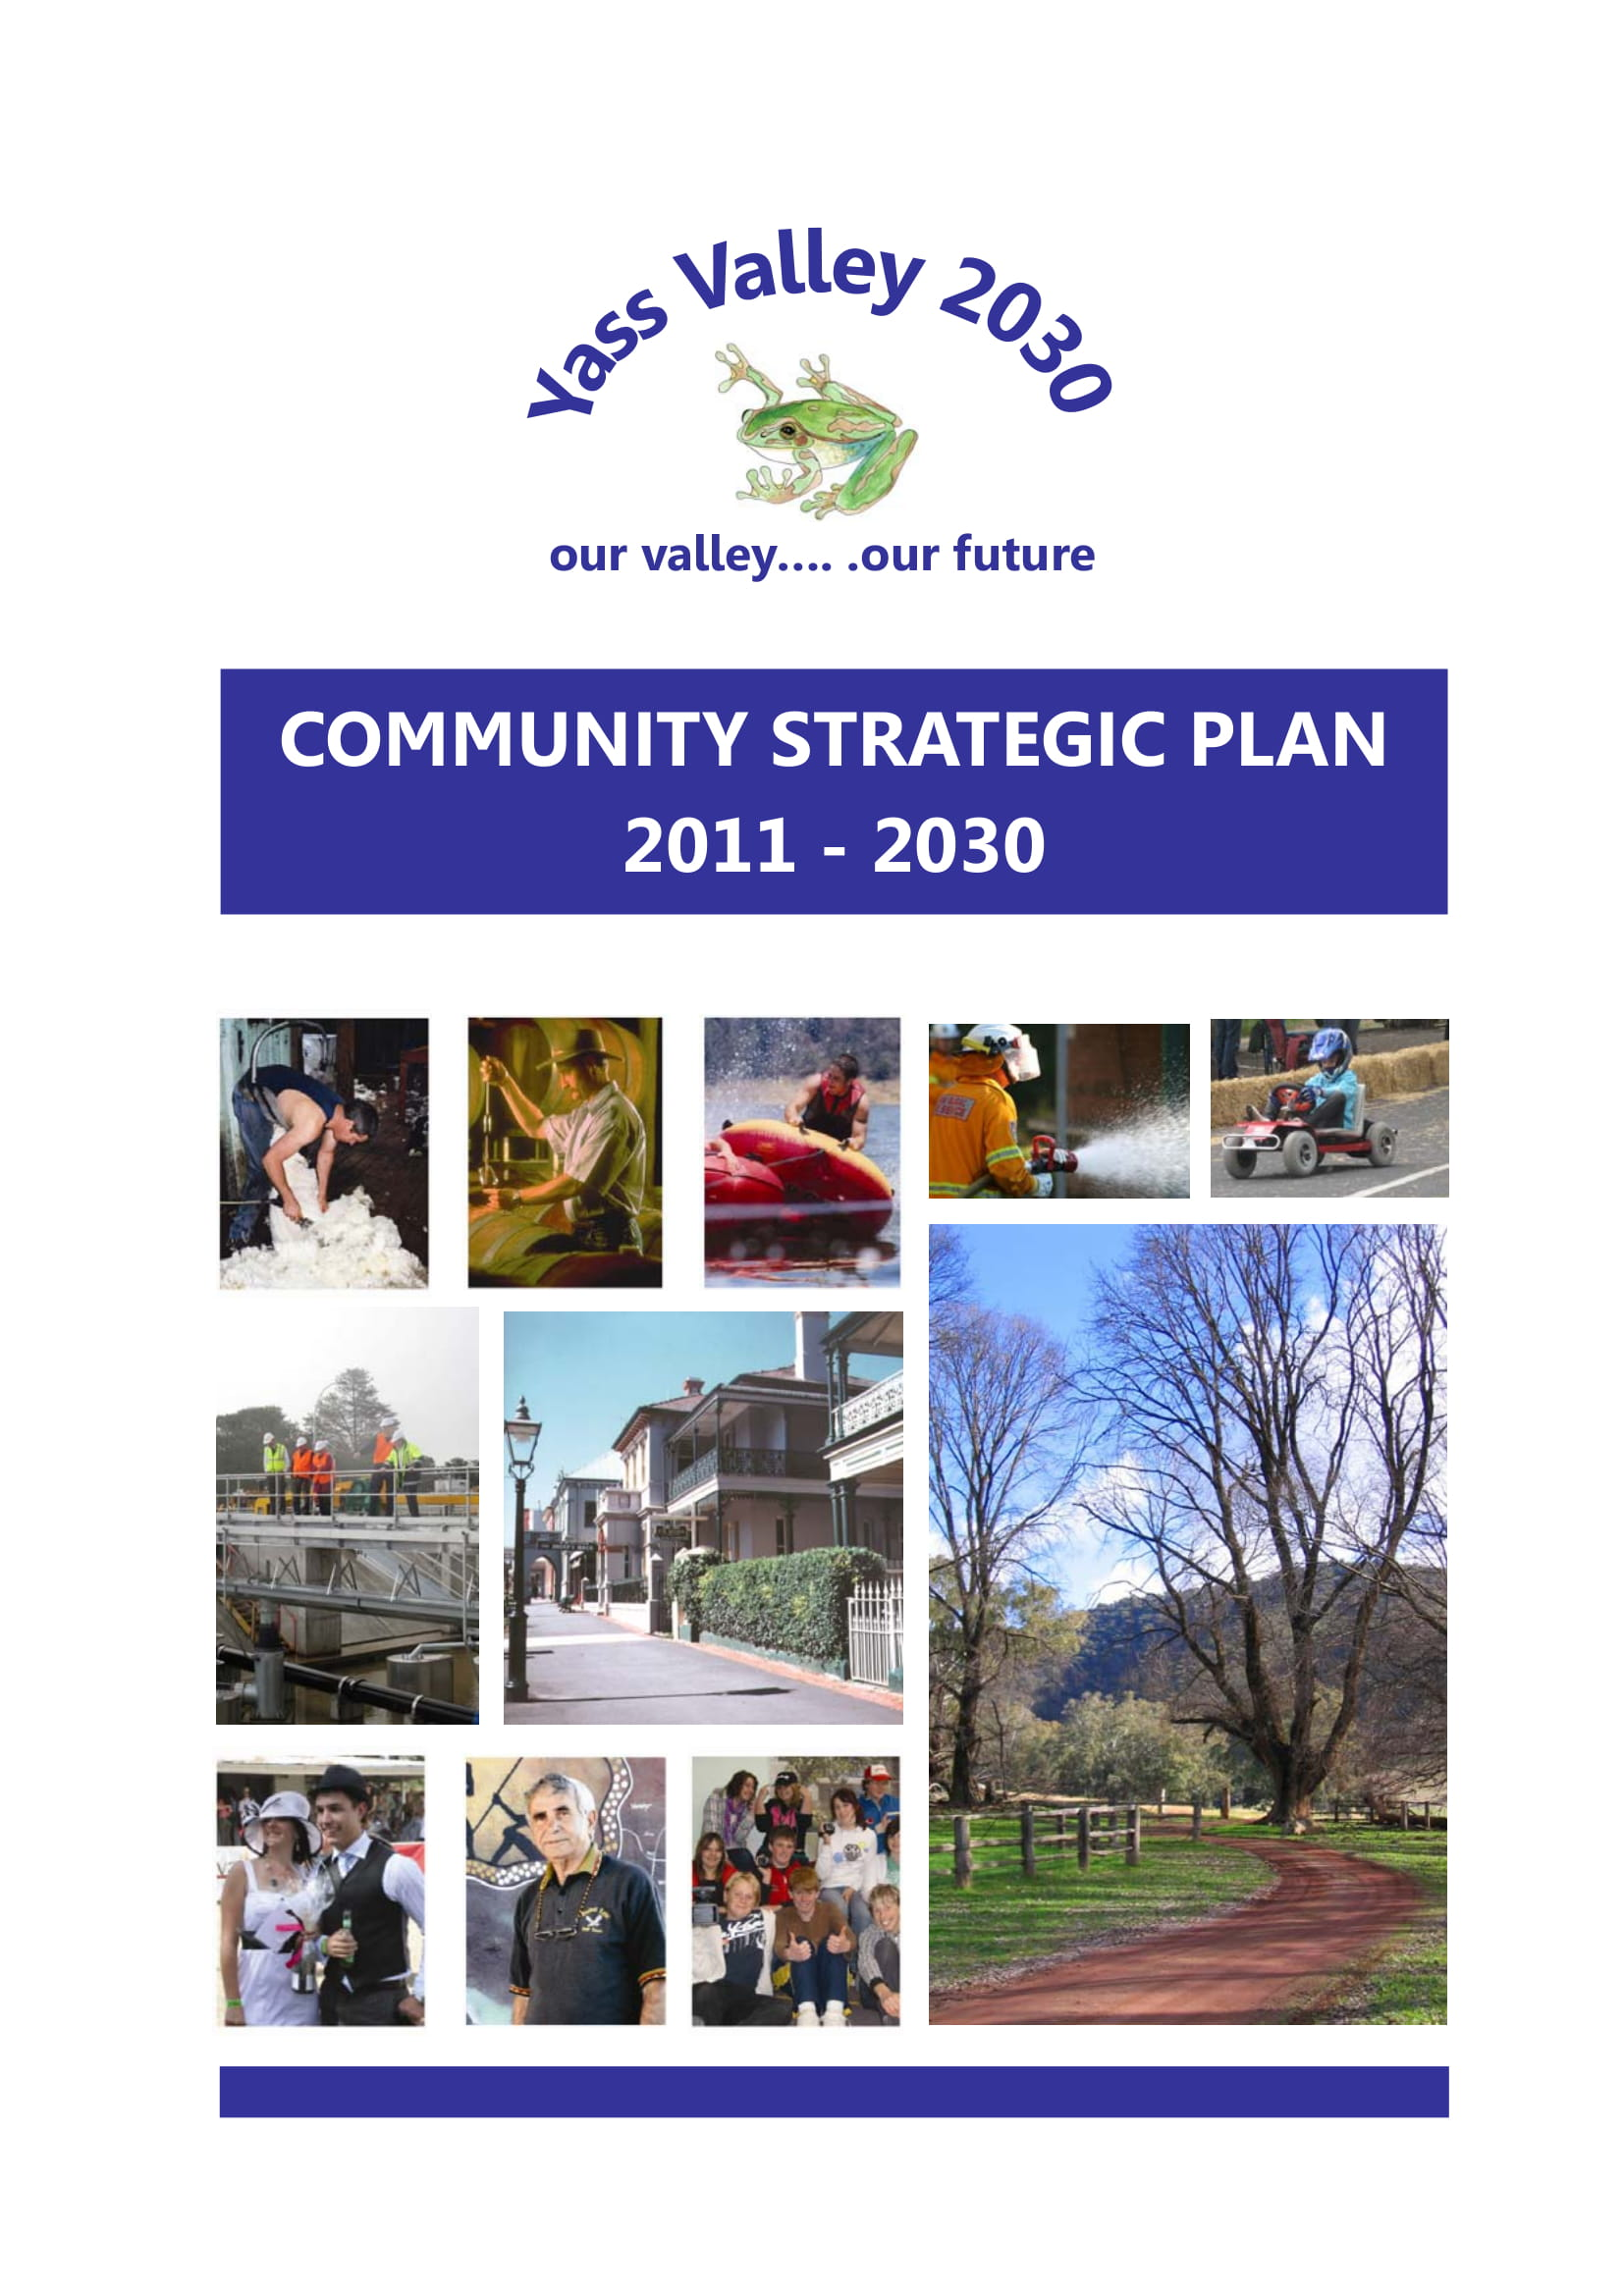 community strategic plan example 01